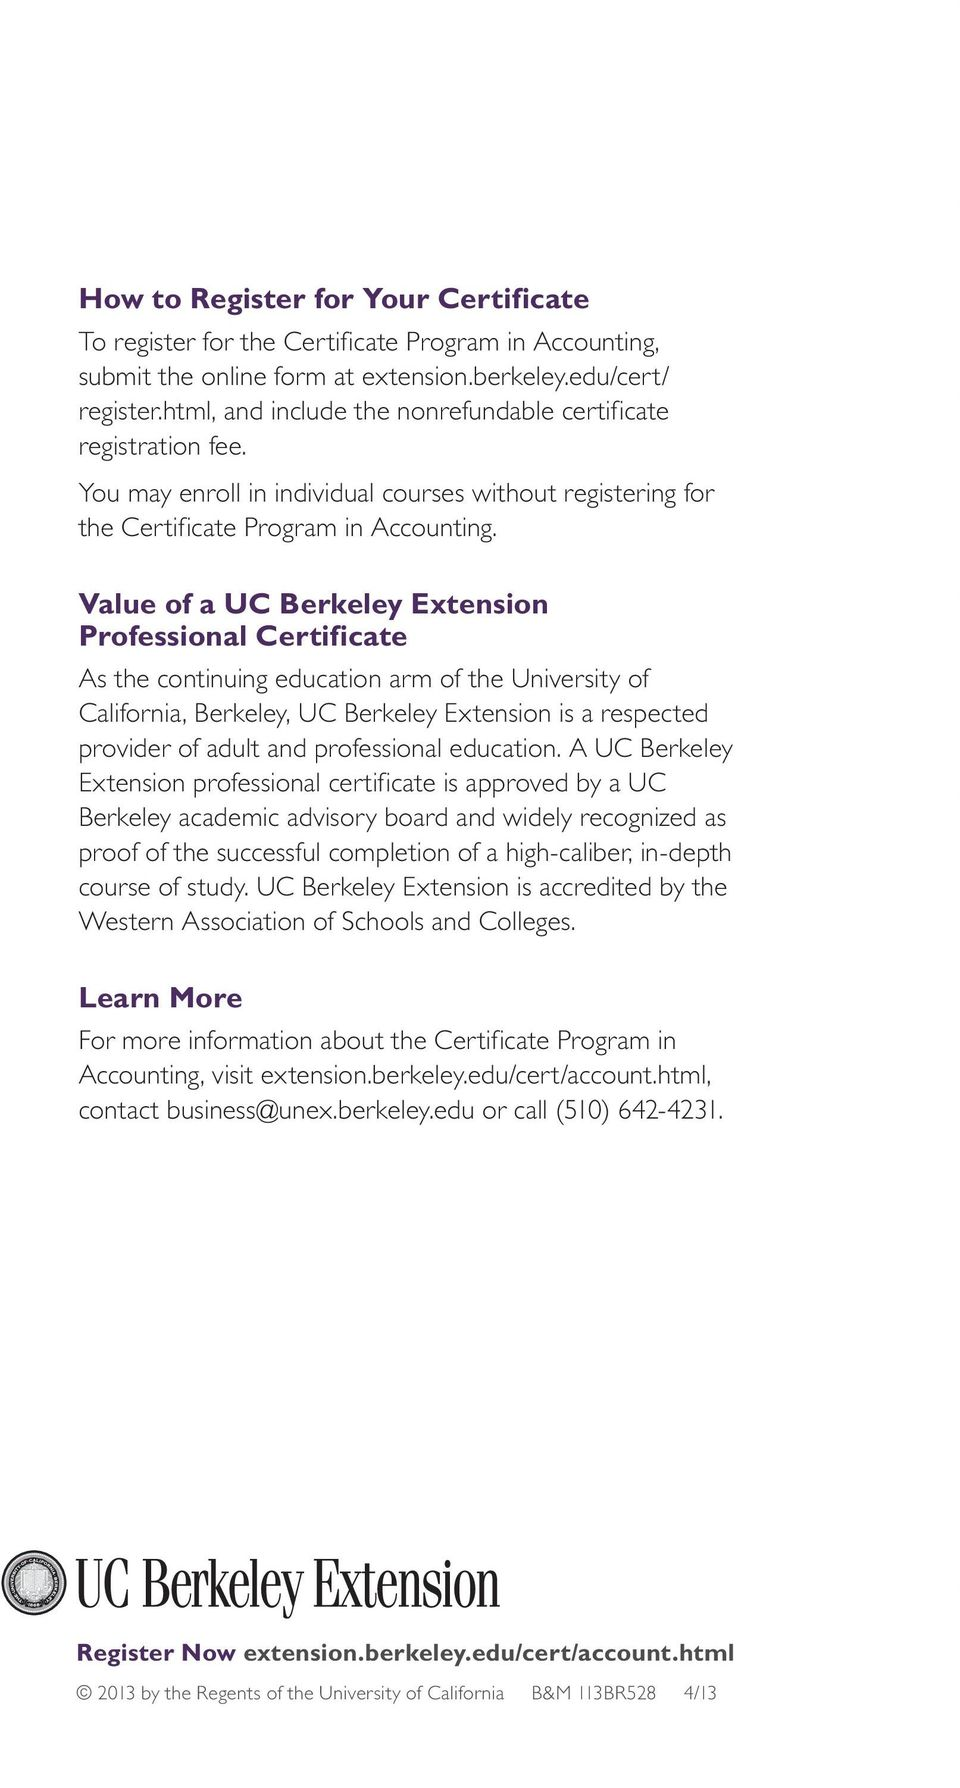 Value of a C erkeley xtension Professional Certificate As the continuing education arm of the niversity of California, erkeley, C erkeley xtension is a respected provider of adult and professional